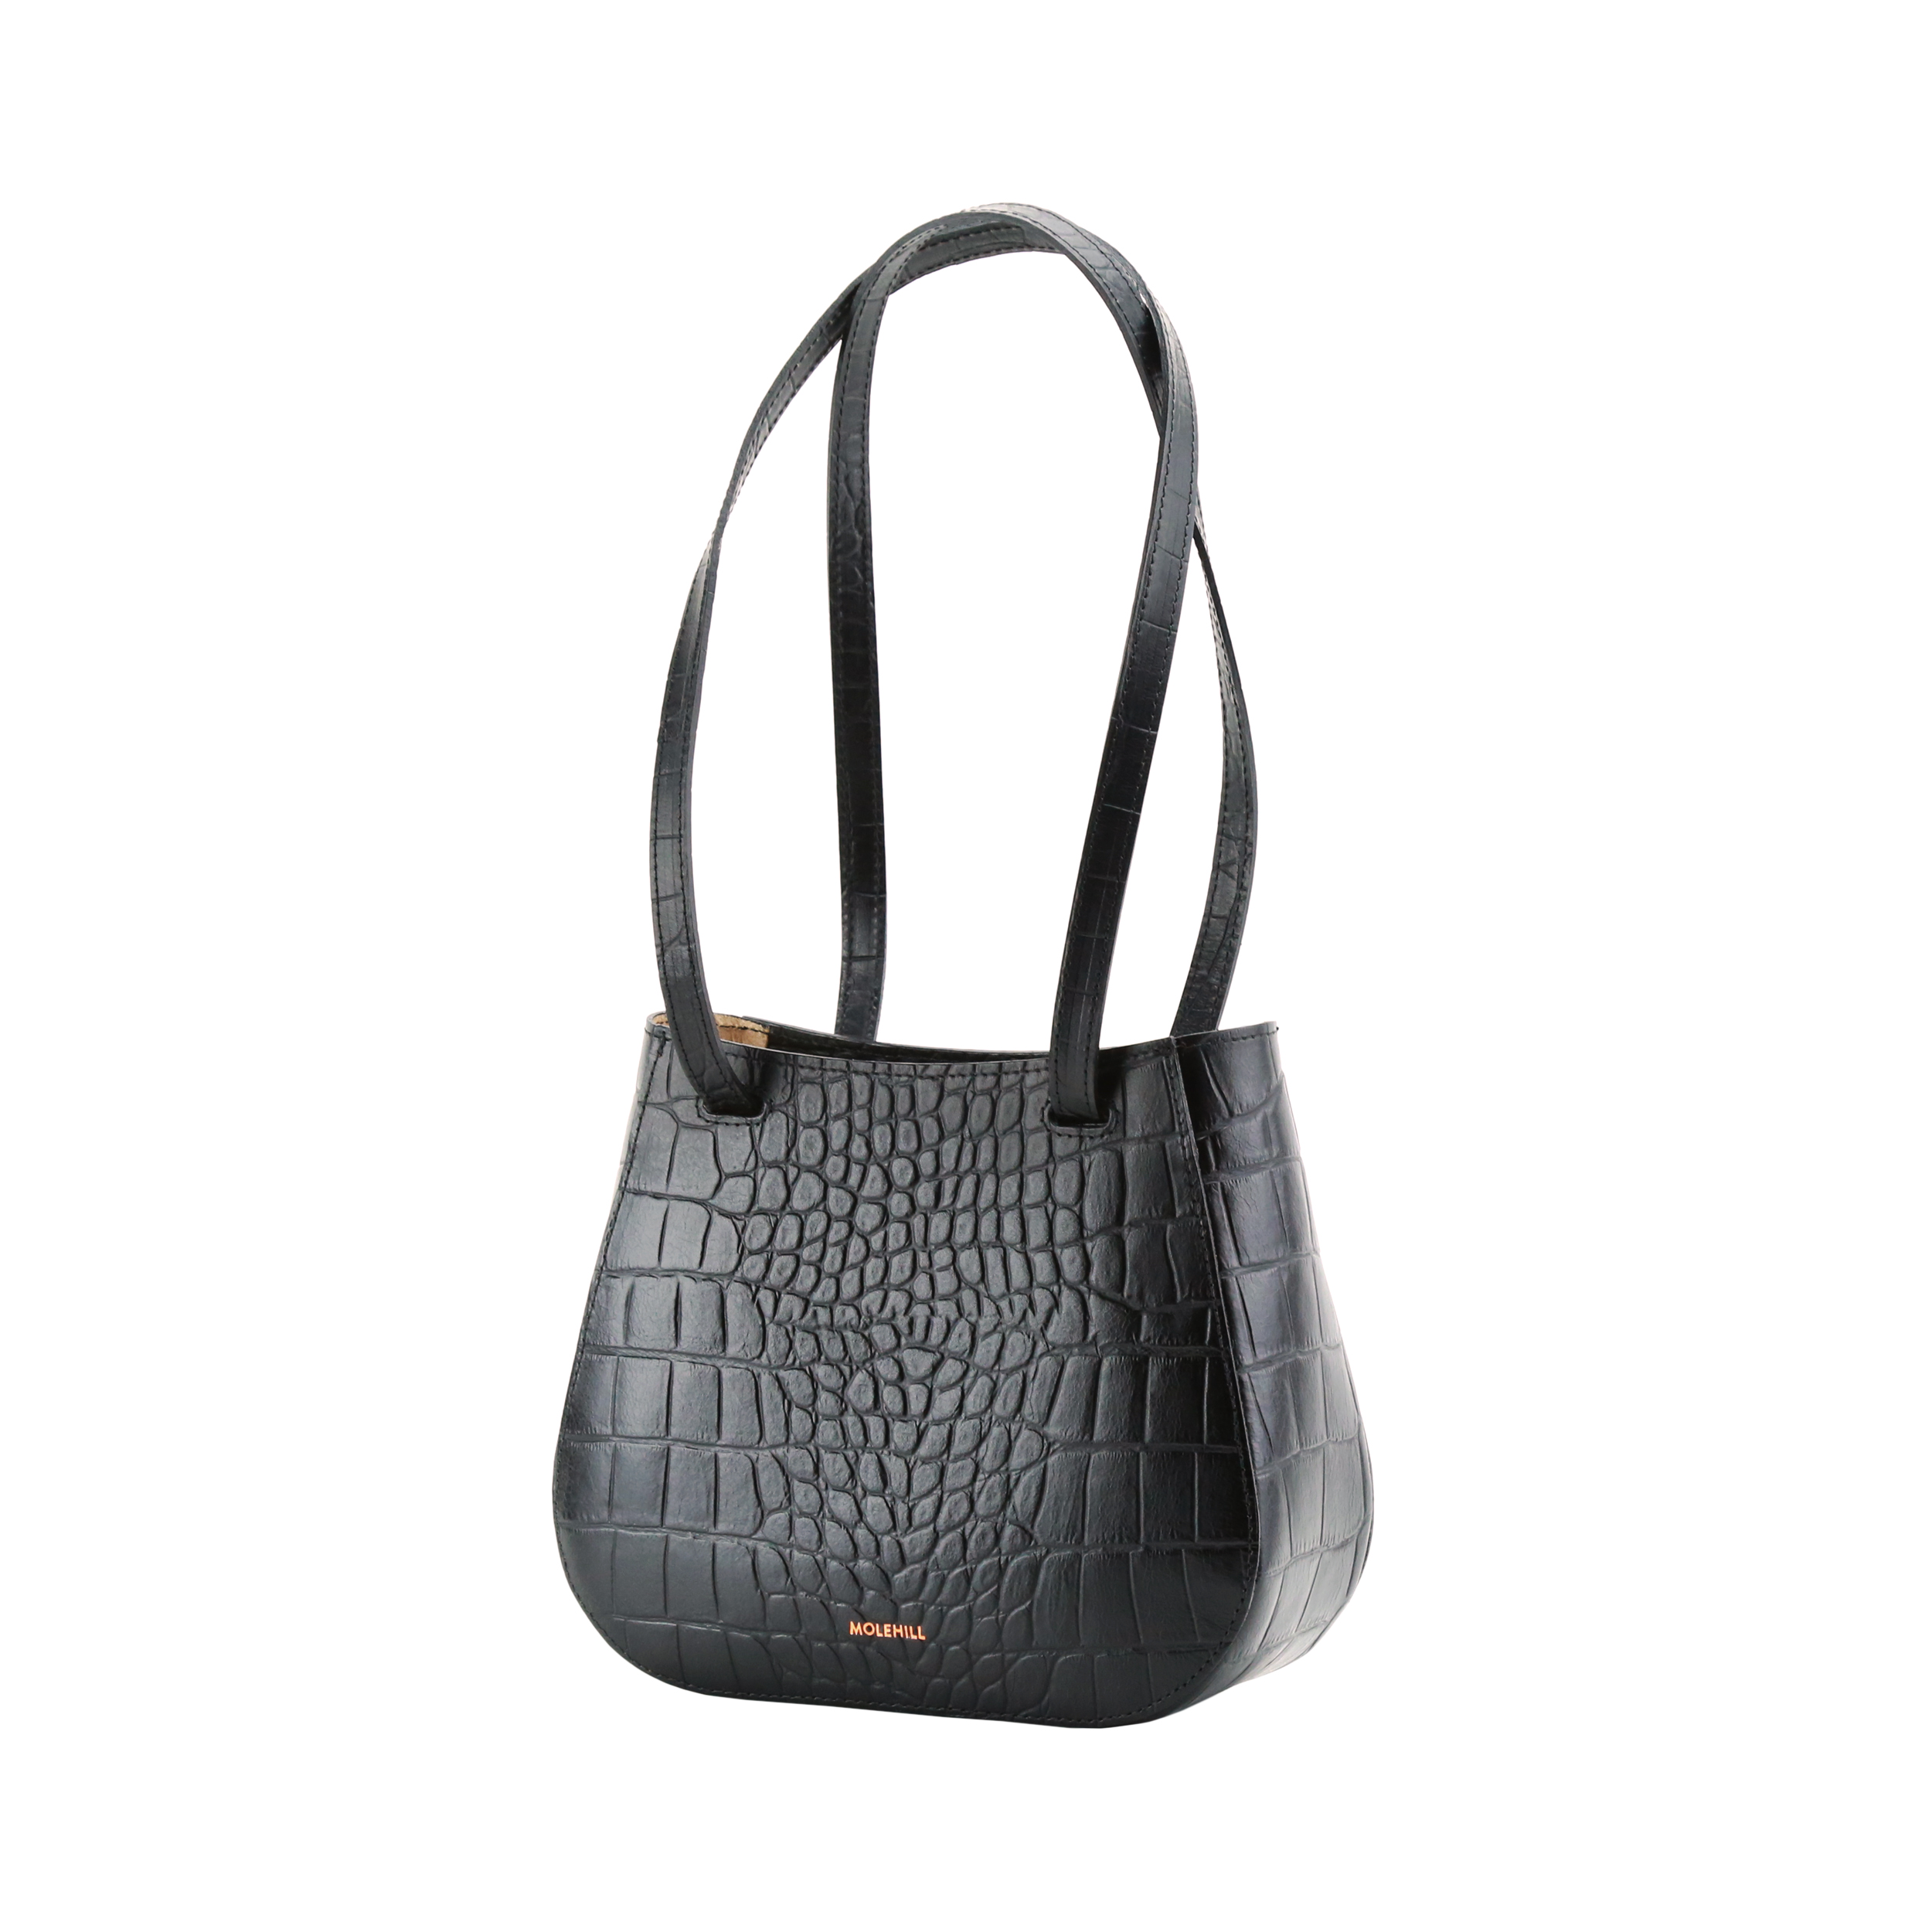 LESA-Small-Bag-Croco-Black-Special-Edition-2